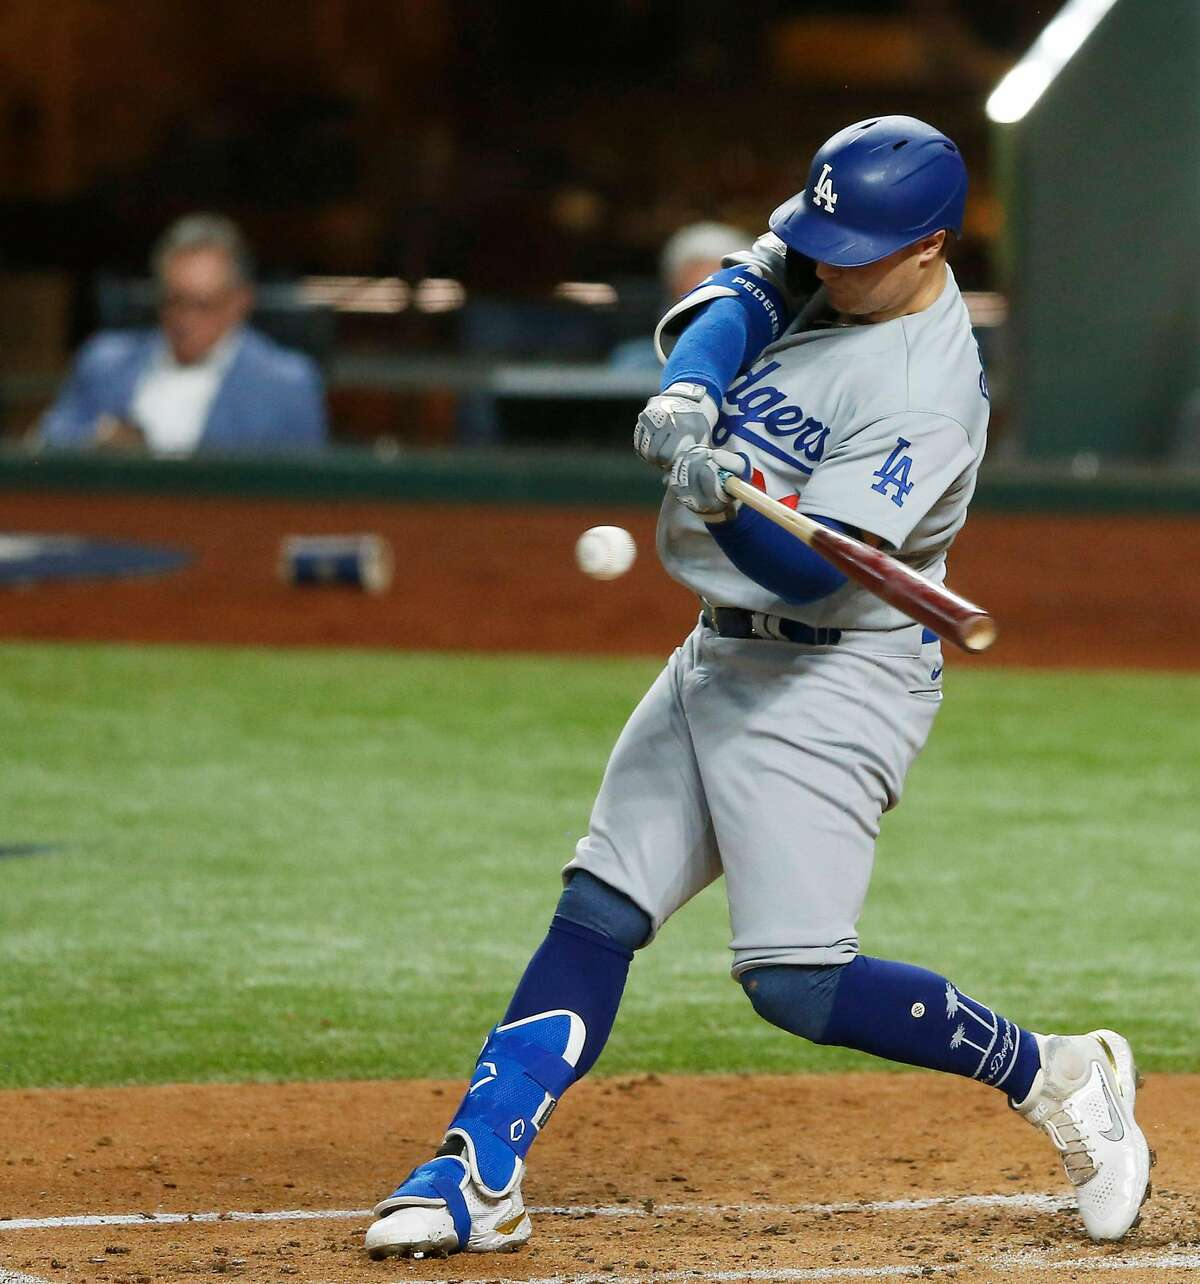 The Dodgers' Joc Pederson hits a solo home against the Tampa Bay Rays during the second inning of Game 5 of the World Series at Globe Life Field in Arlington, Texas. Pederson will become a free agent this offseason.